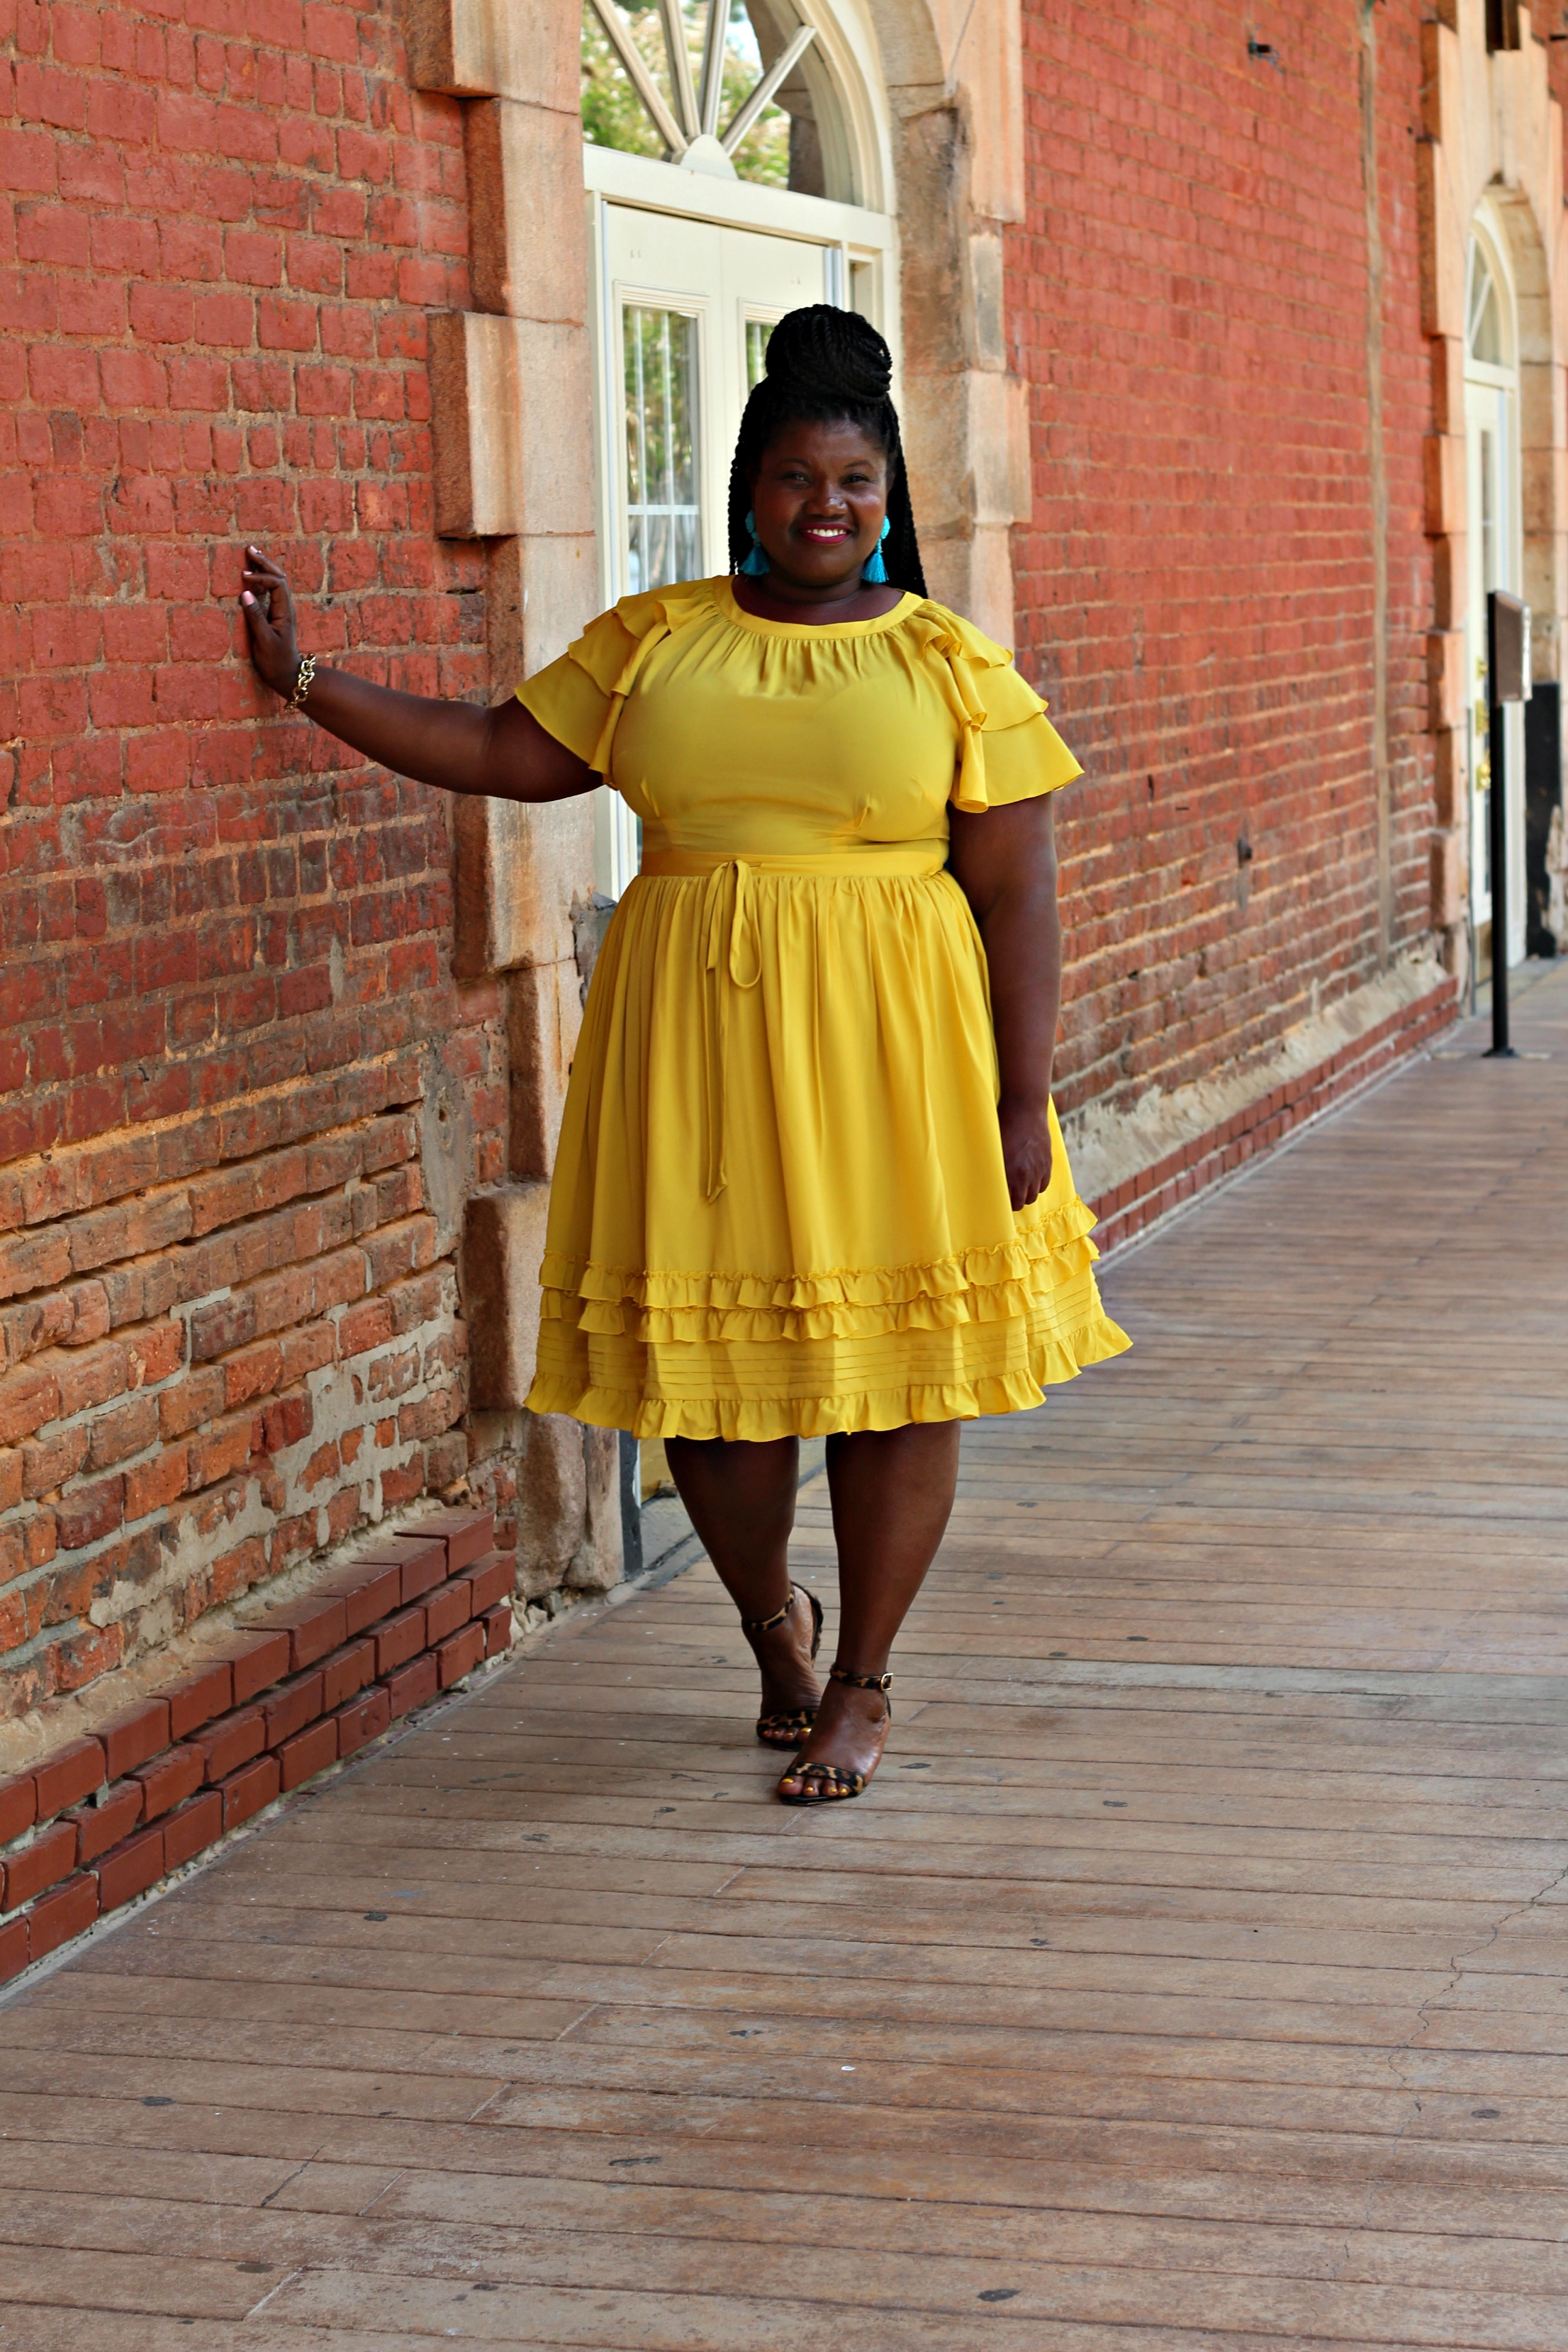 plus size dresses, eloquii, yellow dresses, plus size, tcf style expo, atlanta, leopard print wedges, jcrew, midi dresses, tassel earrings, plus size fashion, natural hair, target, who what wear collection , sheer plus size blouse, gold pleated skirt, gold midi skirt, lane bryant skirt, h&m, block heels, midi skirts, plus size midi skirts, curvy bloggers, curvy blogs, plus size blogs, plus size bloggers